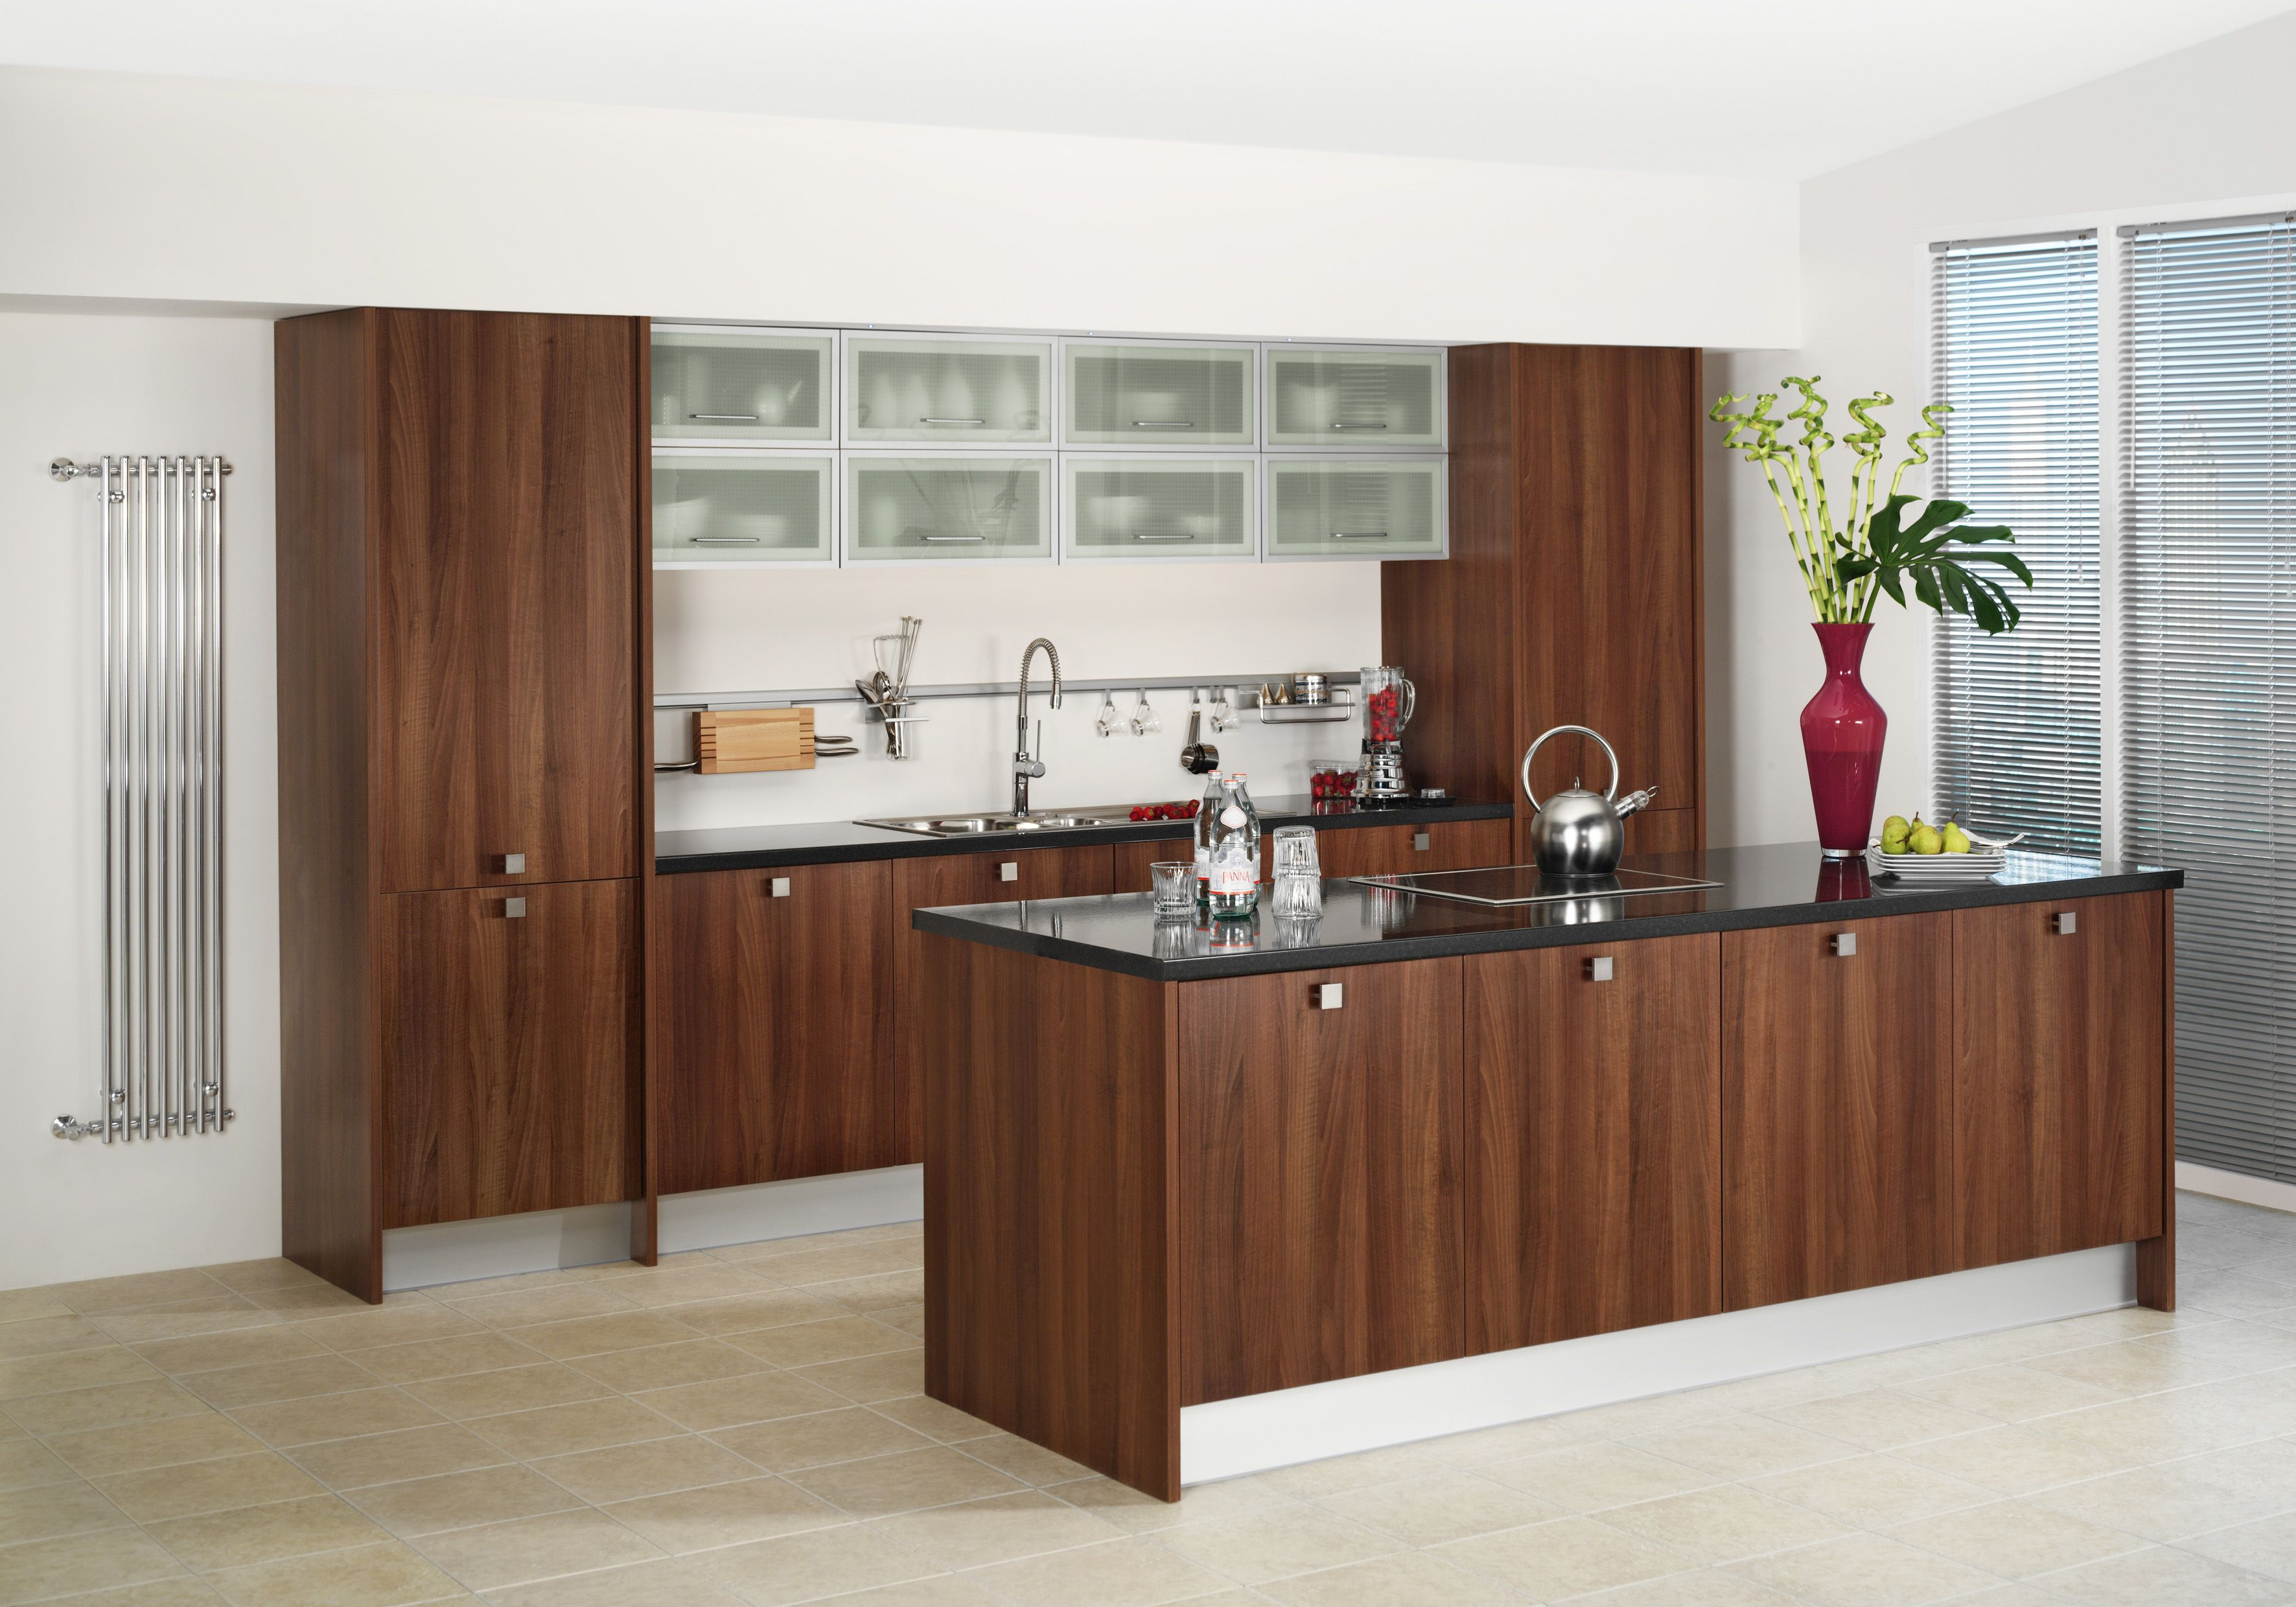 Pin by Ian Reves on For the Home Cheap kitchen